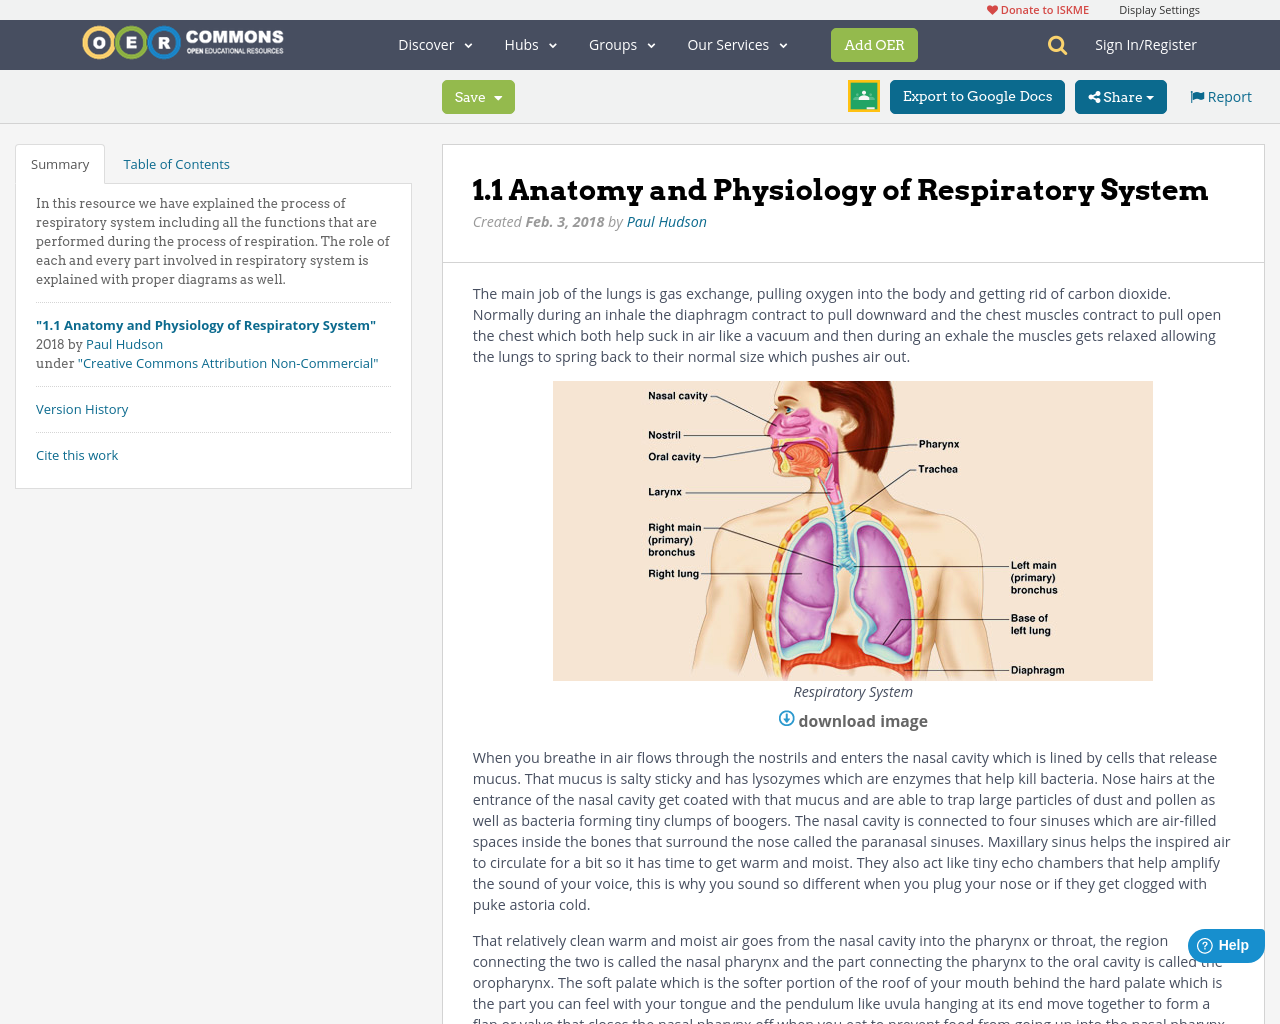 1.1 Anatomy and Physiology of Respiratory System | OER Commons